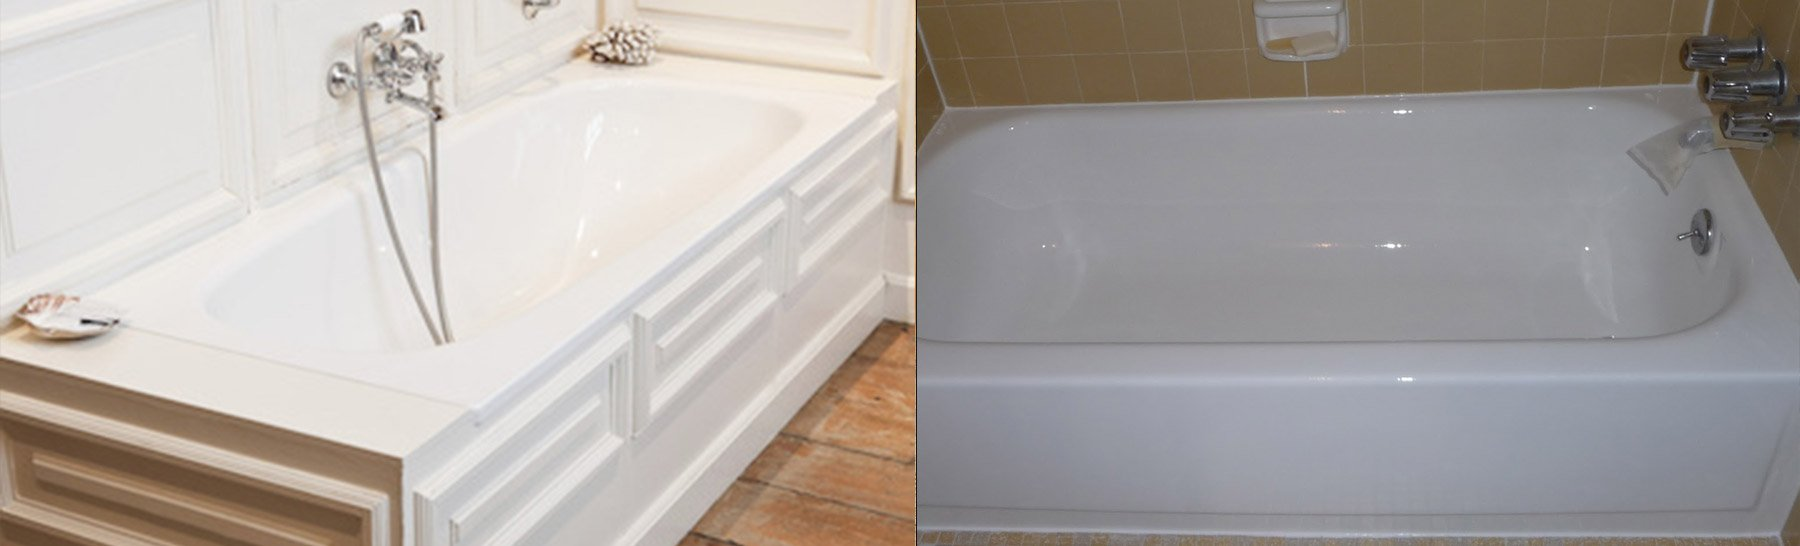 Technologically Advanced Bathtub Reglazing Sterling